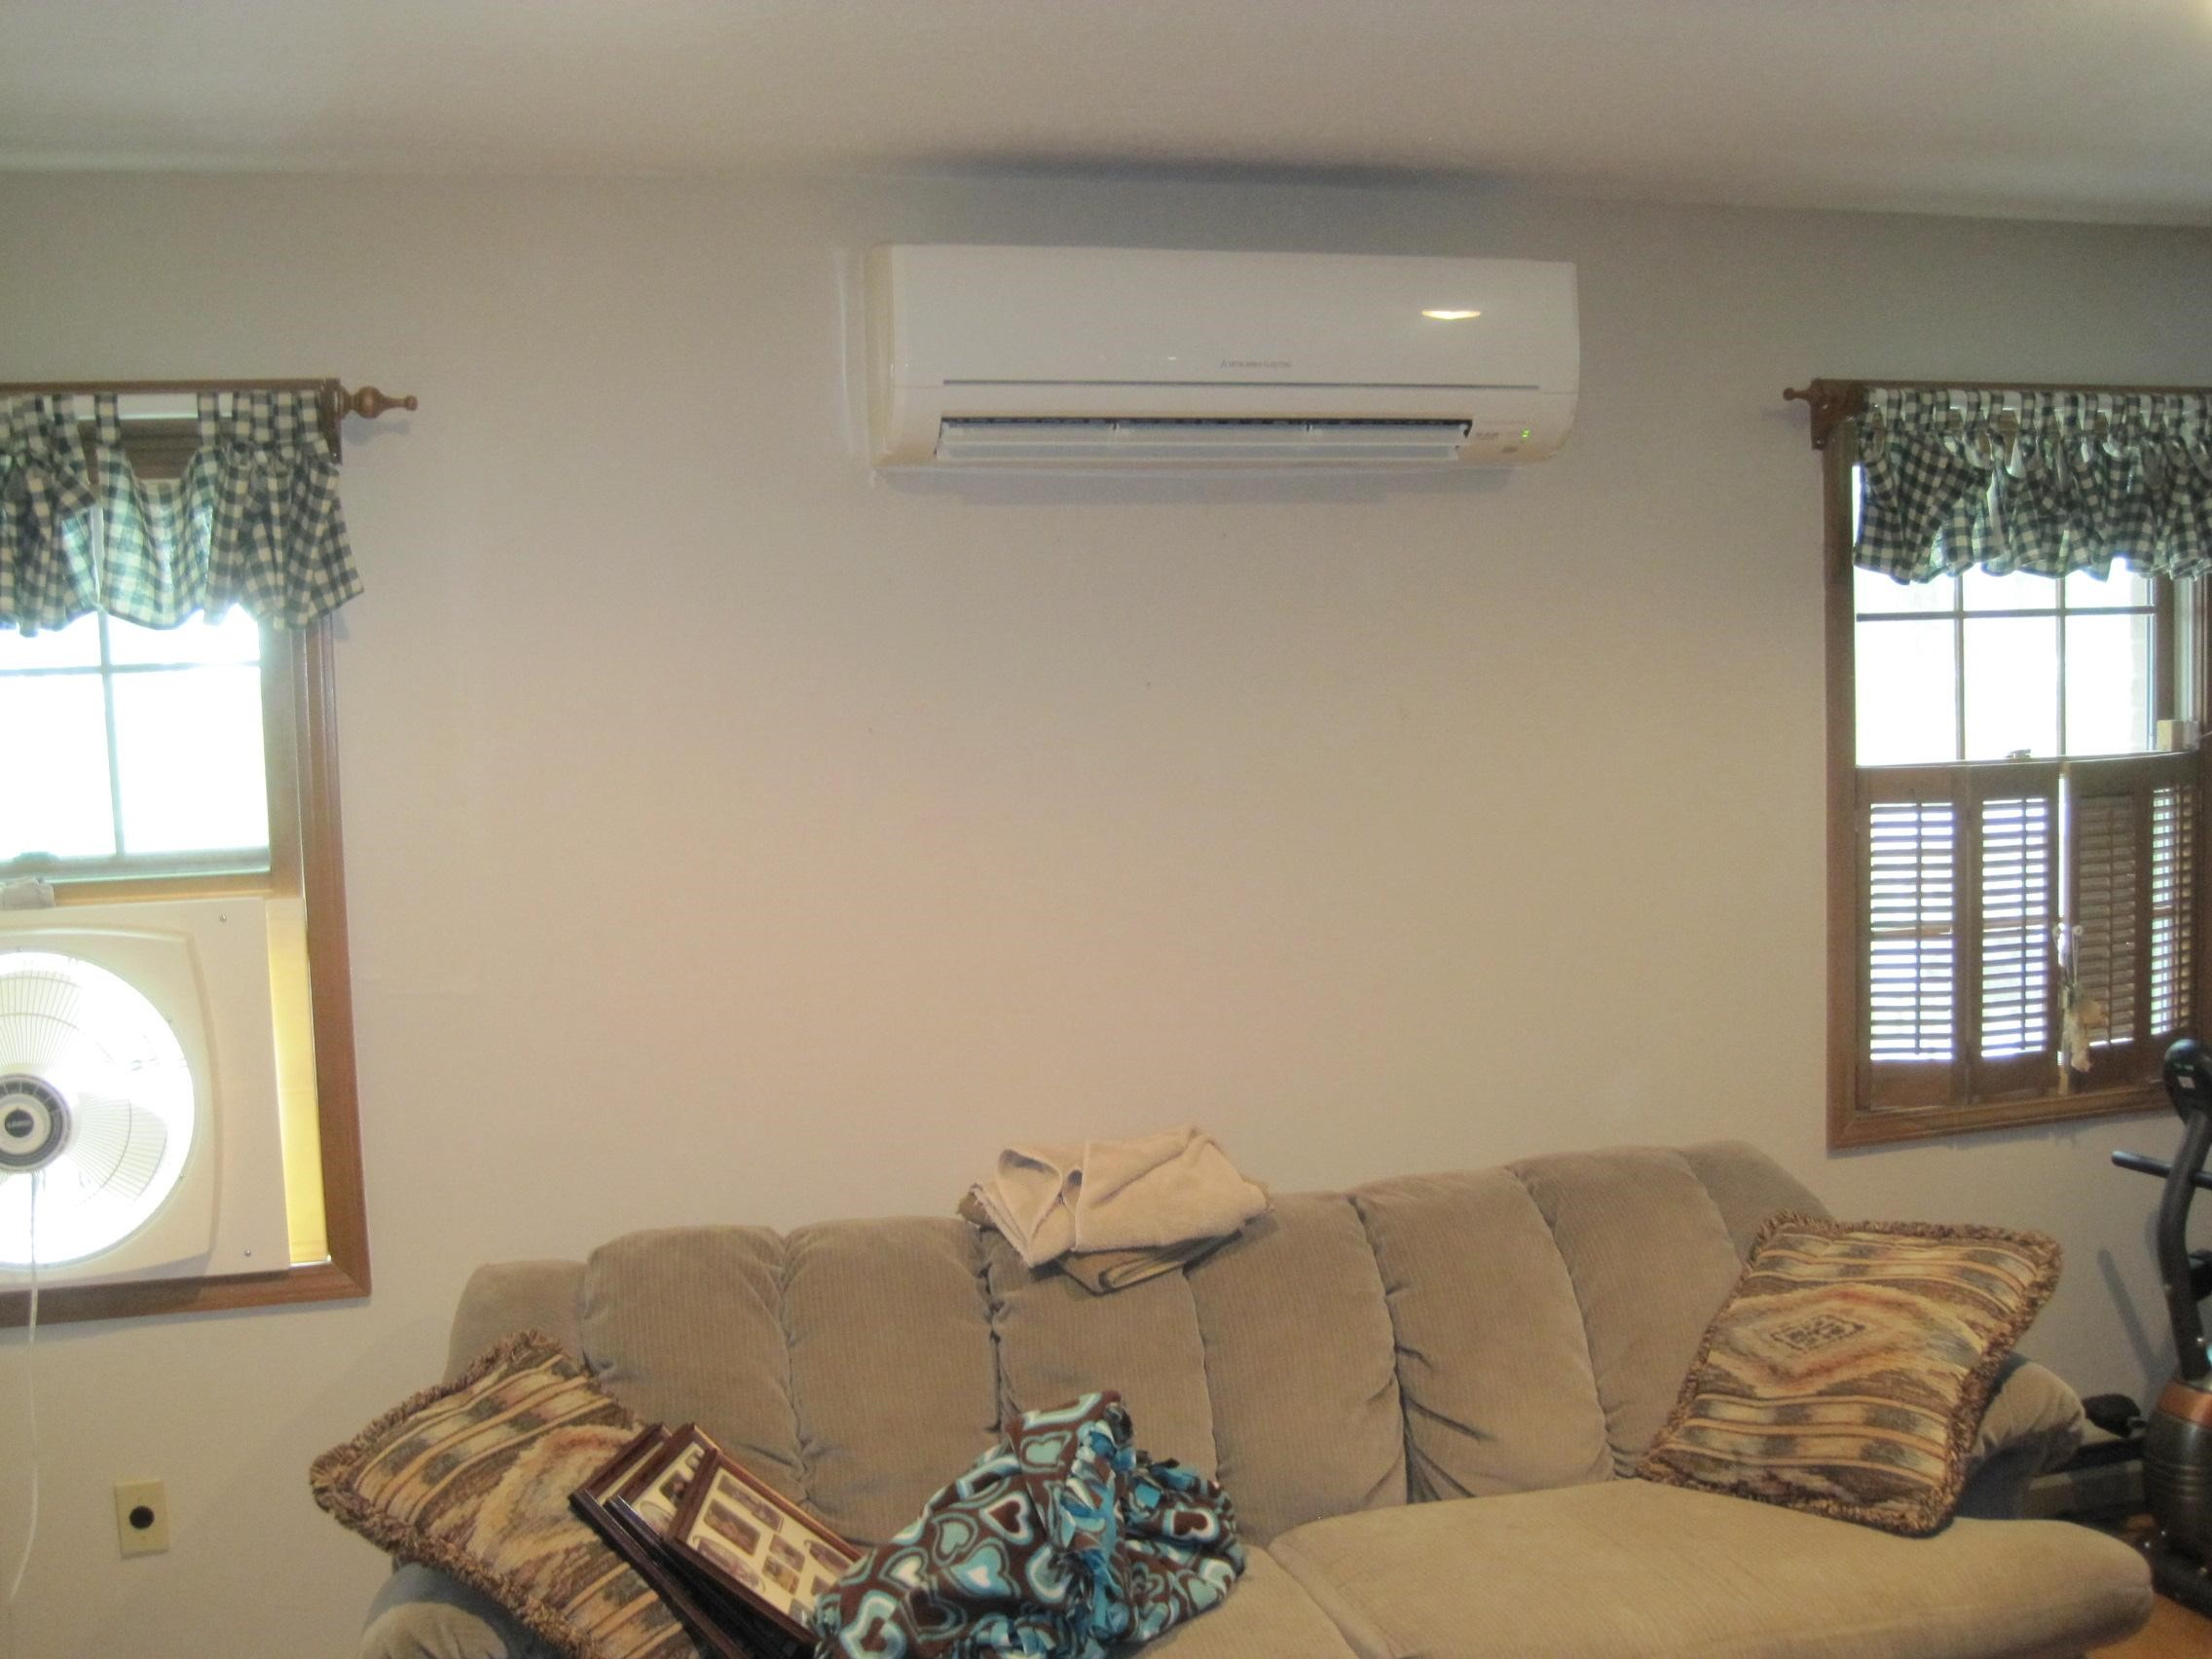 Example of indoor ductless AC in Salem, MA, home.